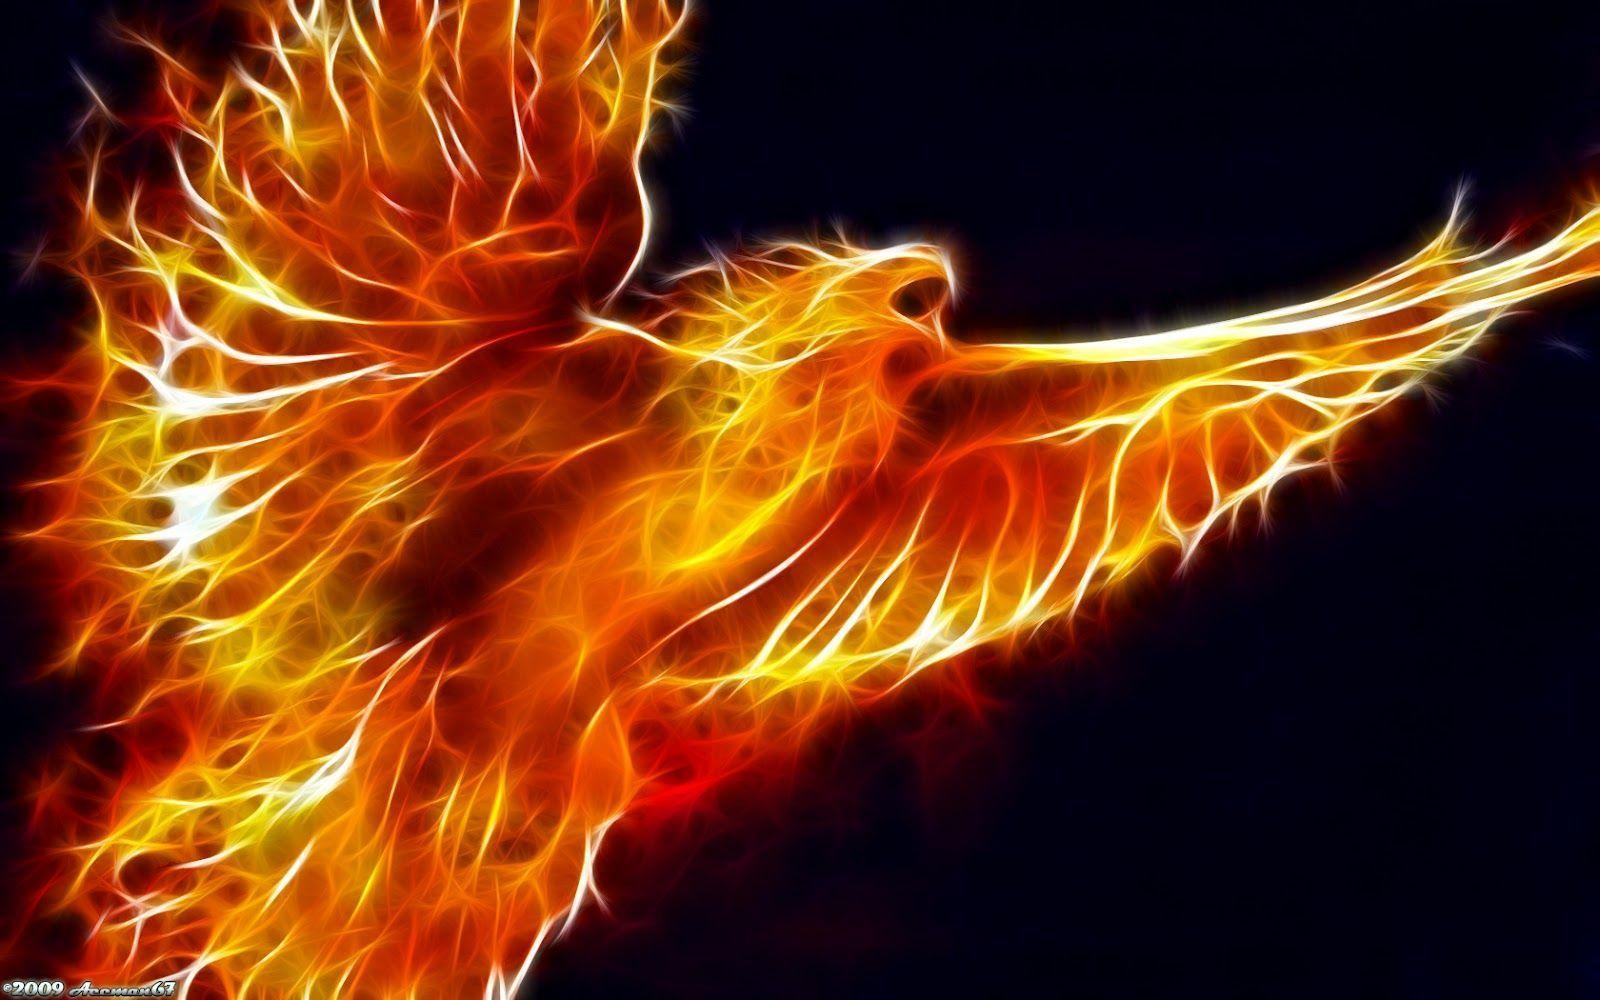 Fire Bird Wallpaper, iPhone Wallpaper, Facebook Cover, Twitter